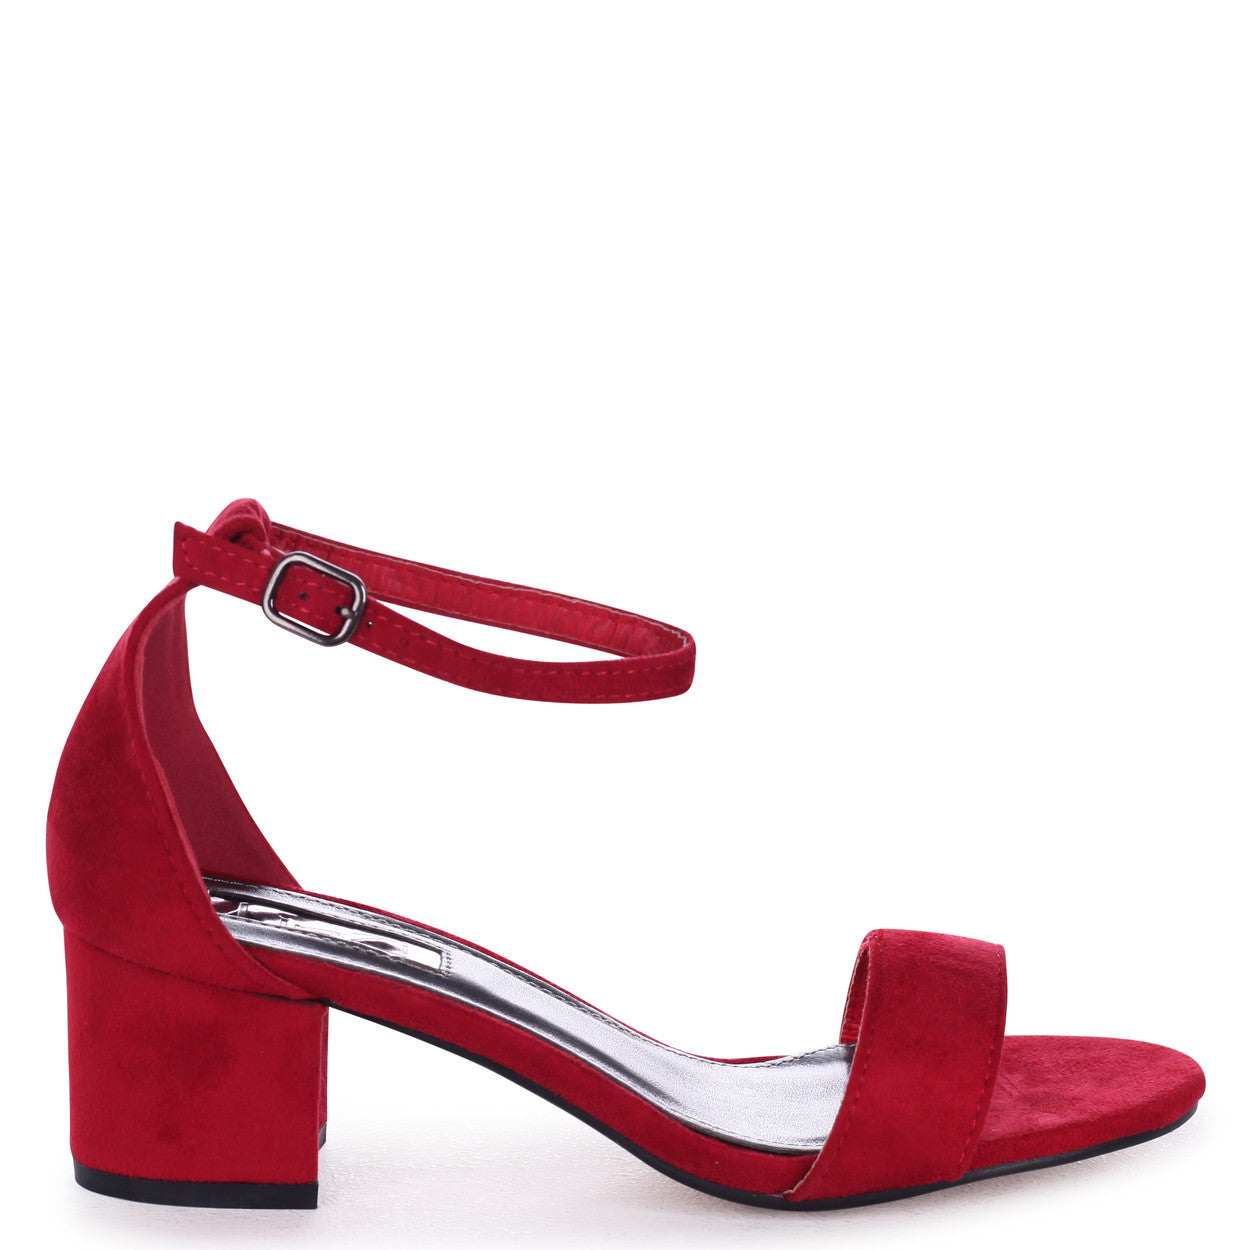 7dcb853e940 Red Suede Barely There Block Heeled Sandal – Linzi